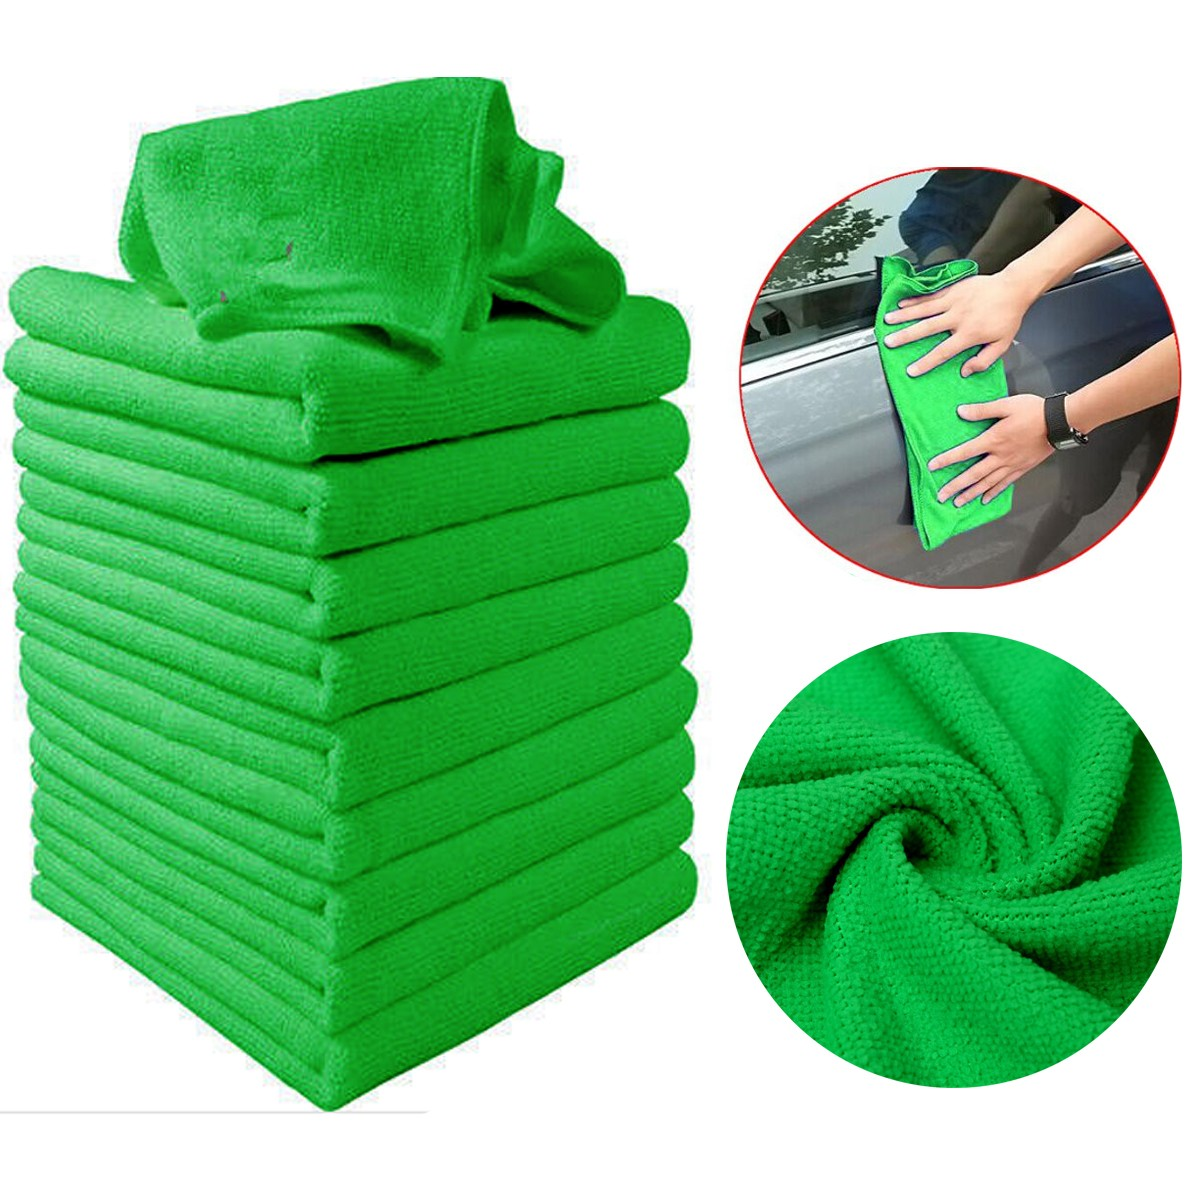 Grtsunsea 20Pcs Micro Fiber Cleaning Cloths Green Auto Car Care Detailing Microfiber Auto Duster Towel Wipes Cleaning Supplies